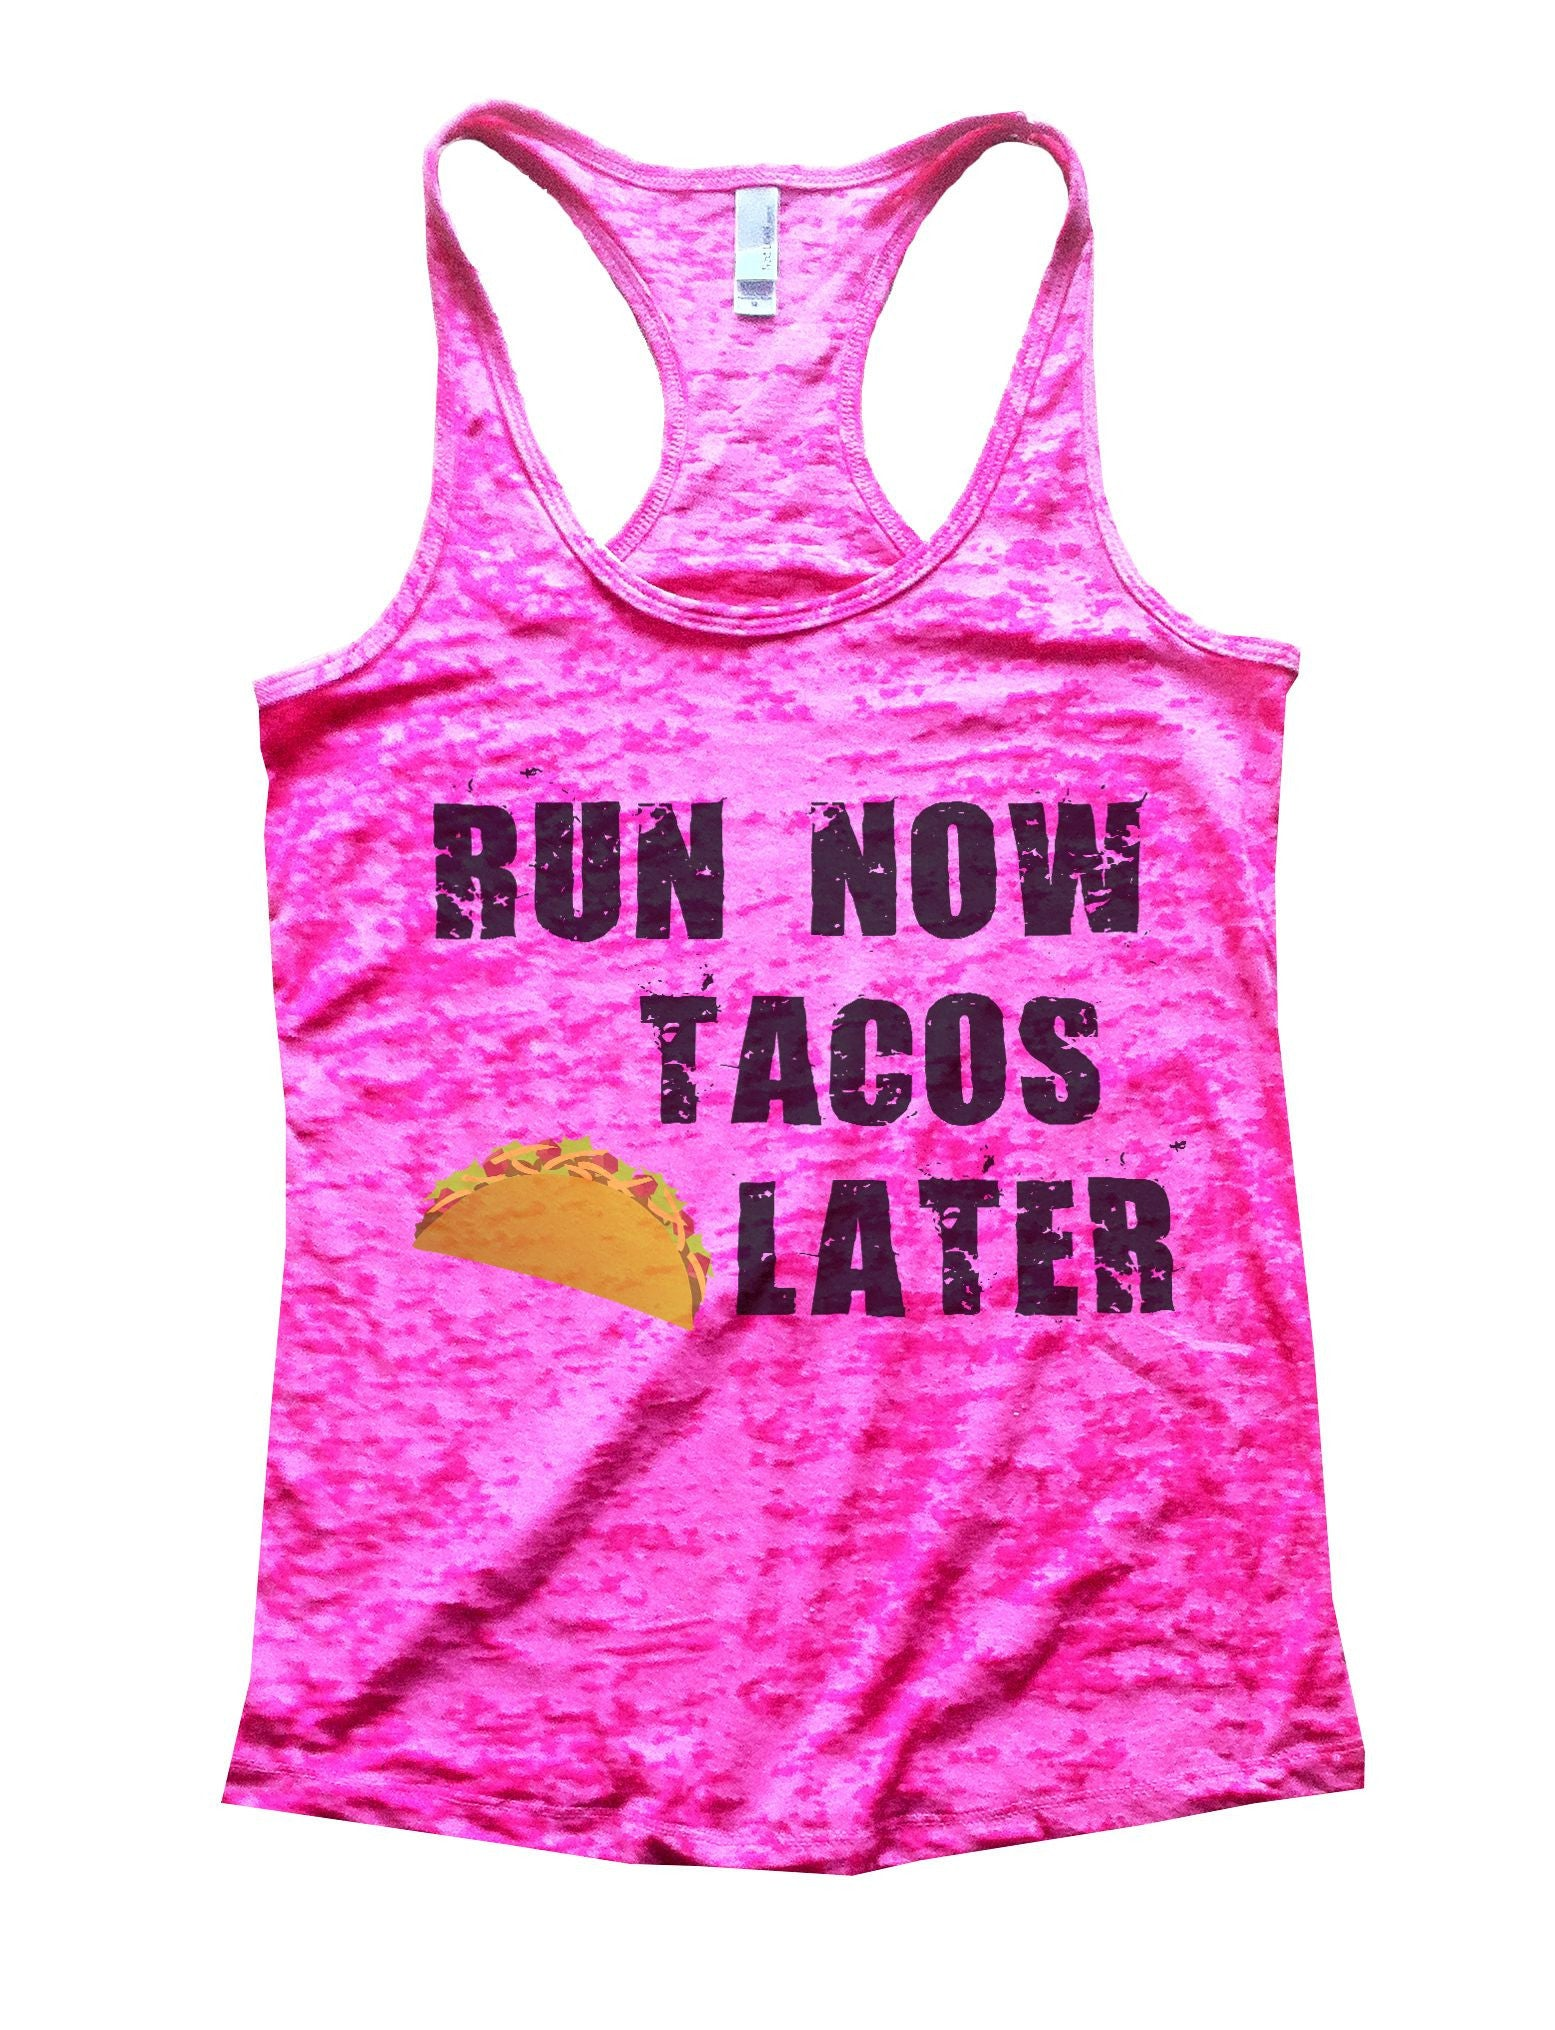 Run Now Tacos Later Burnout Tank Top By BurnoutTankTops.com - 650 - Funny Shirts Tank Tops Burnouts and Triblends  - 4